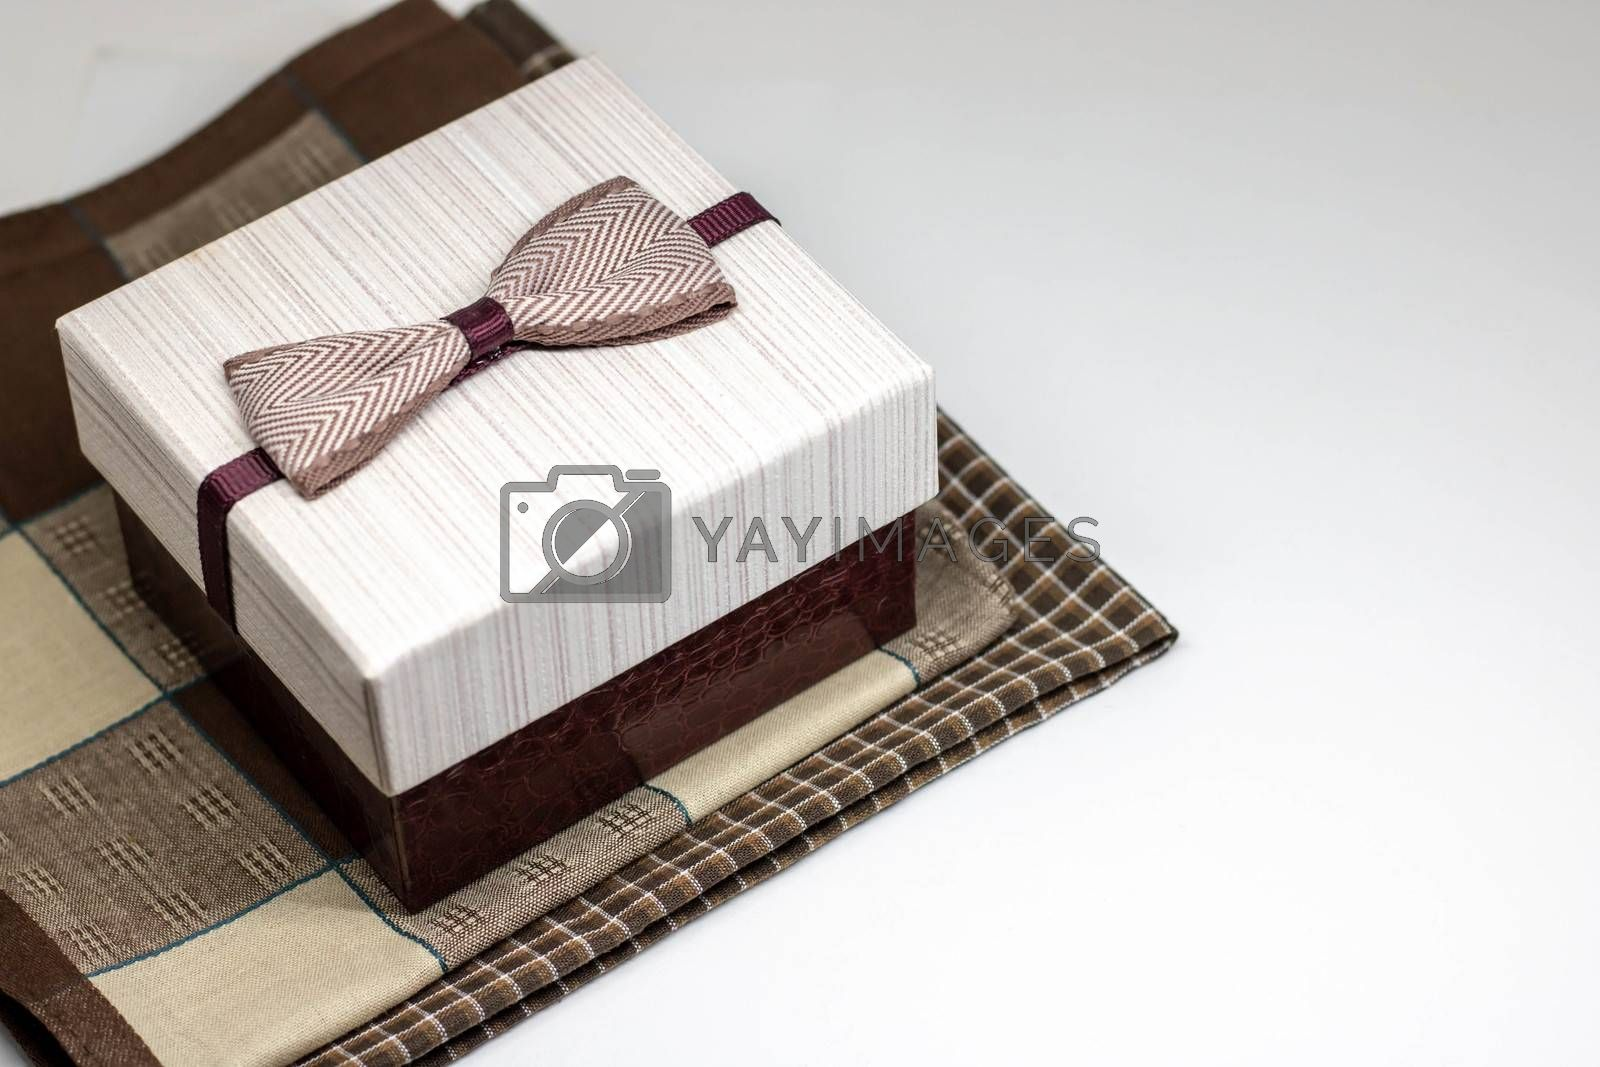 box with filling material inside. Empty natural box with decorative straw for happy gifts isolate on white background